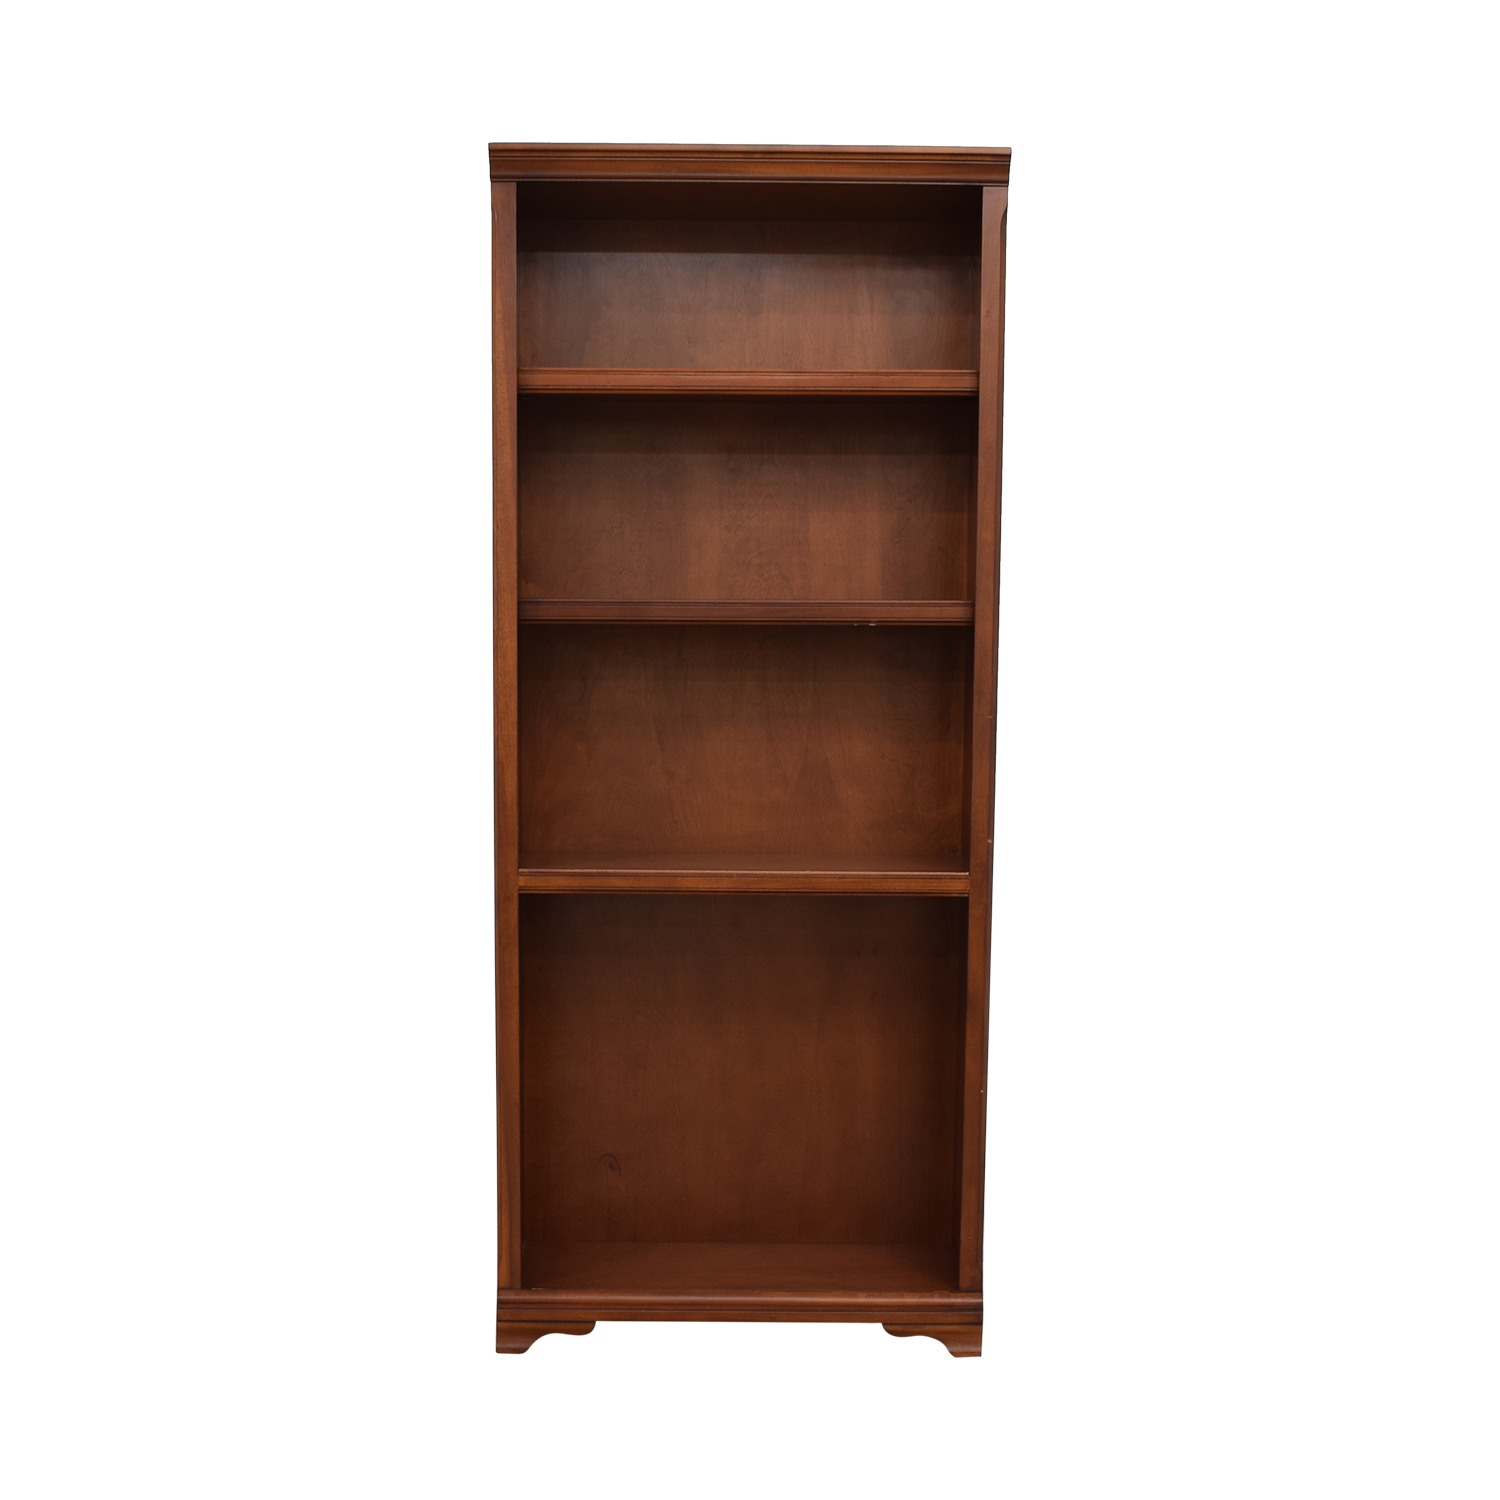 Raymour & Flanigan Raymour & Flanigan Bookcase Bookcases & Shelving